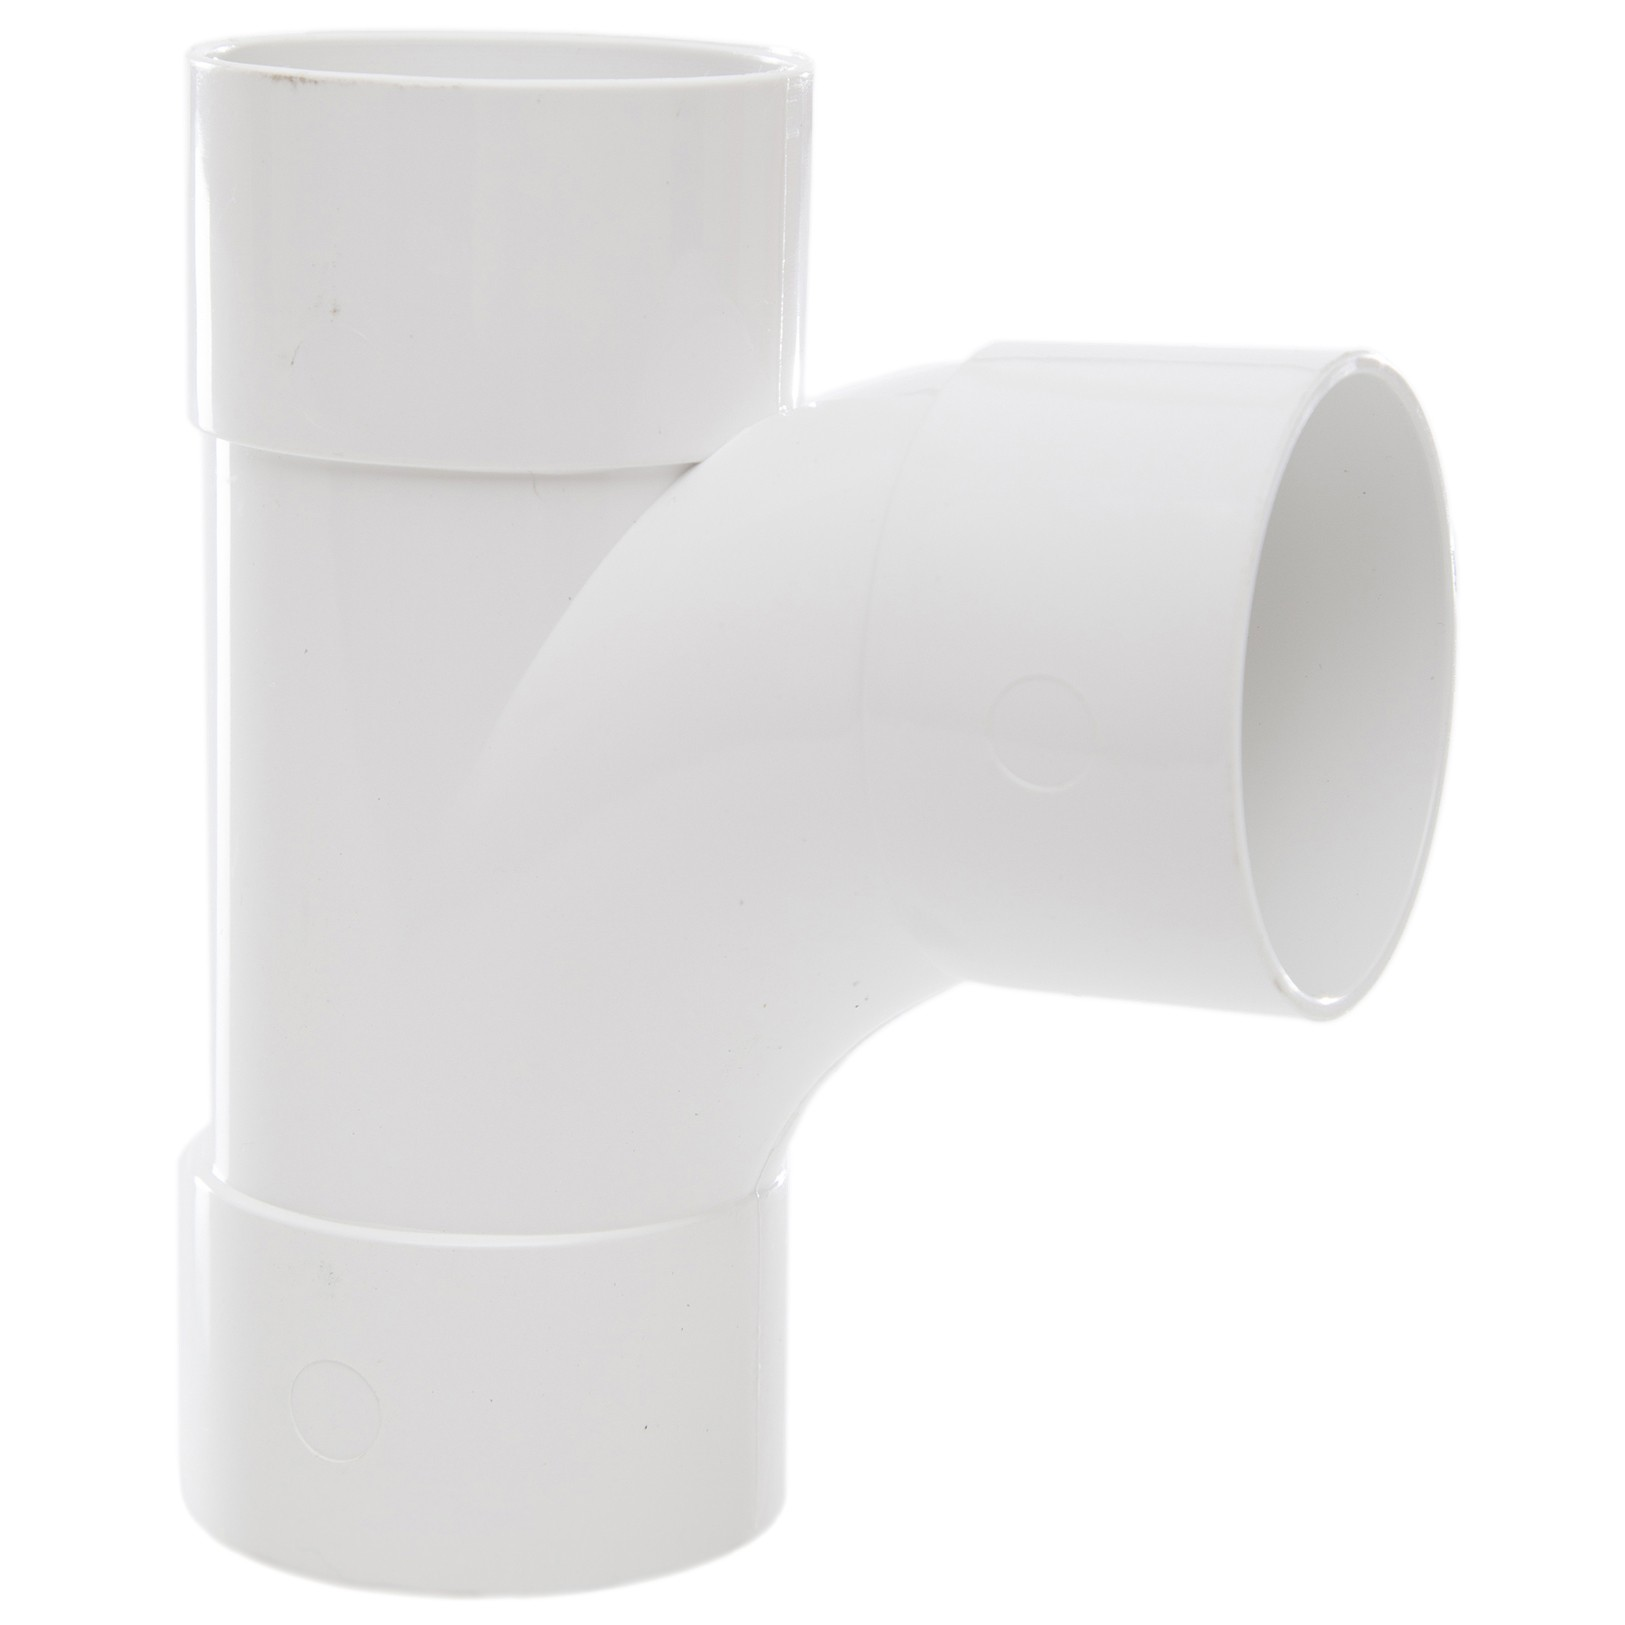 Polypipe 50mm Solvent Weld Waste 92.5 Degree Swept Tee - White